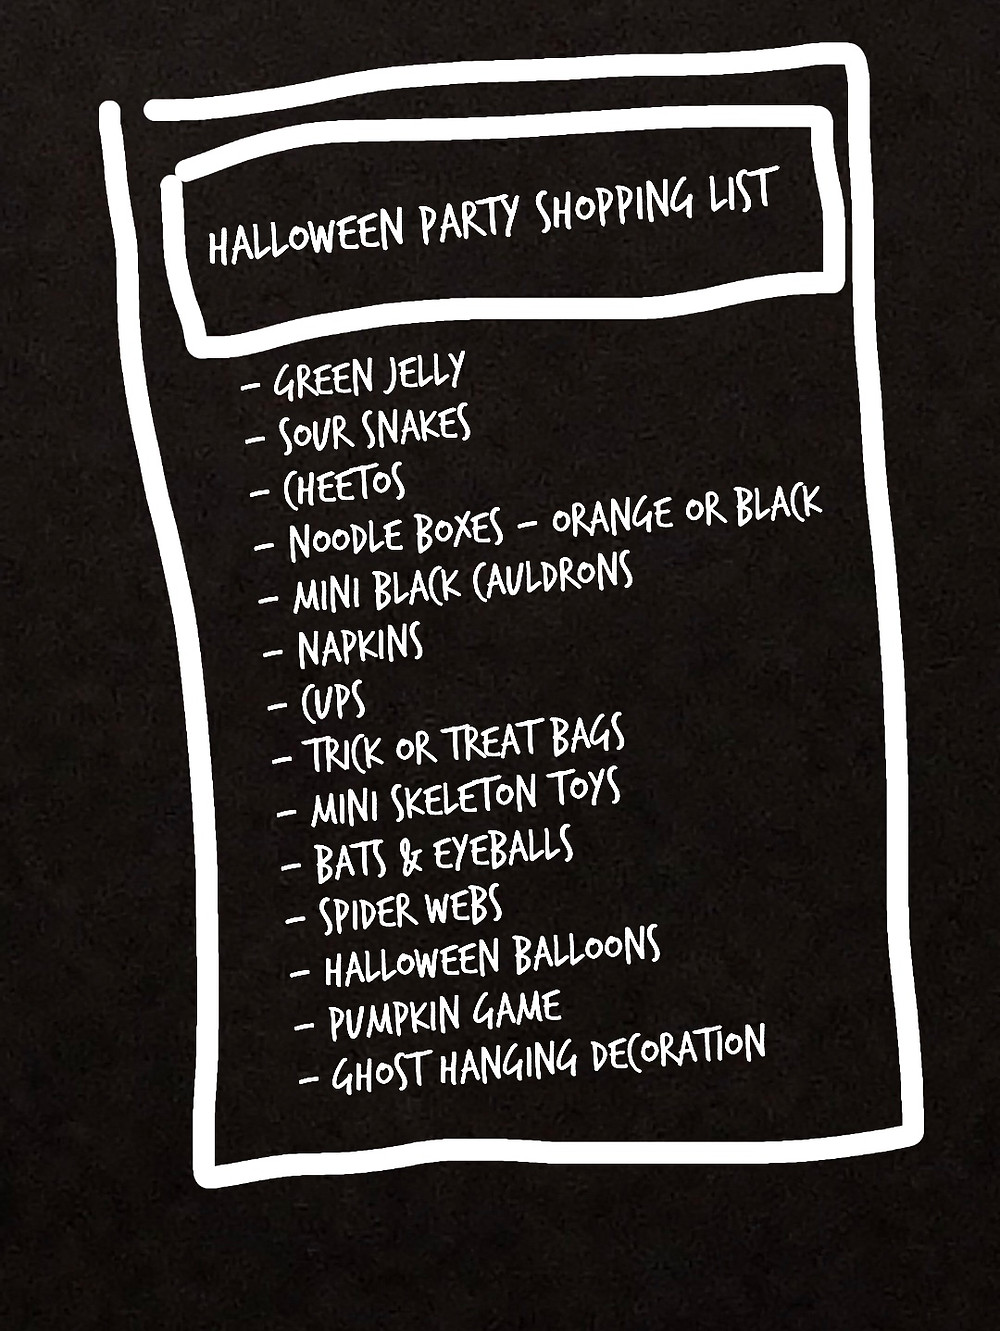 halloween party shopping list ideas